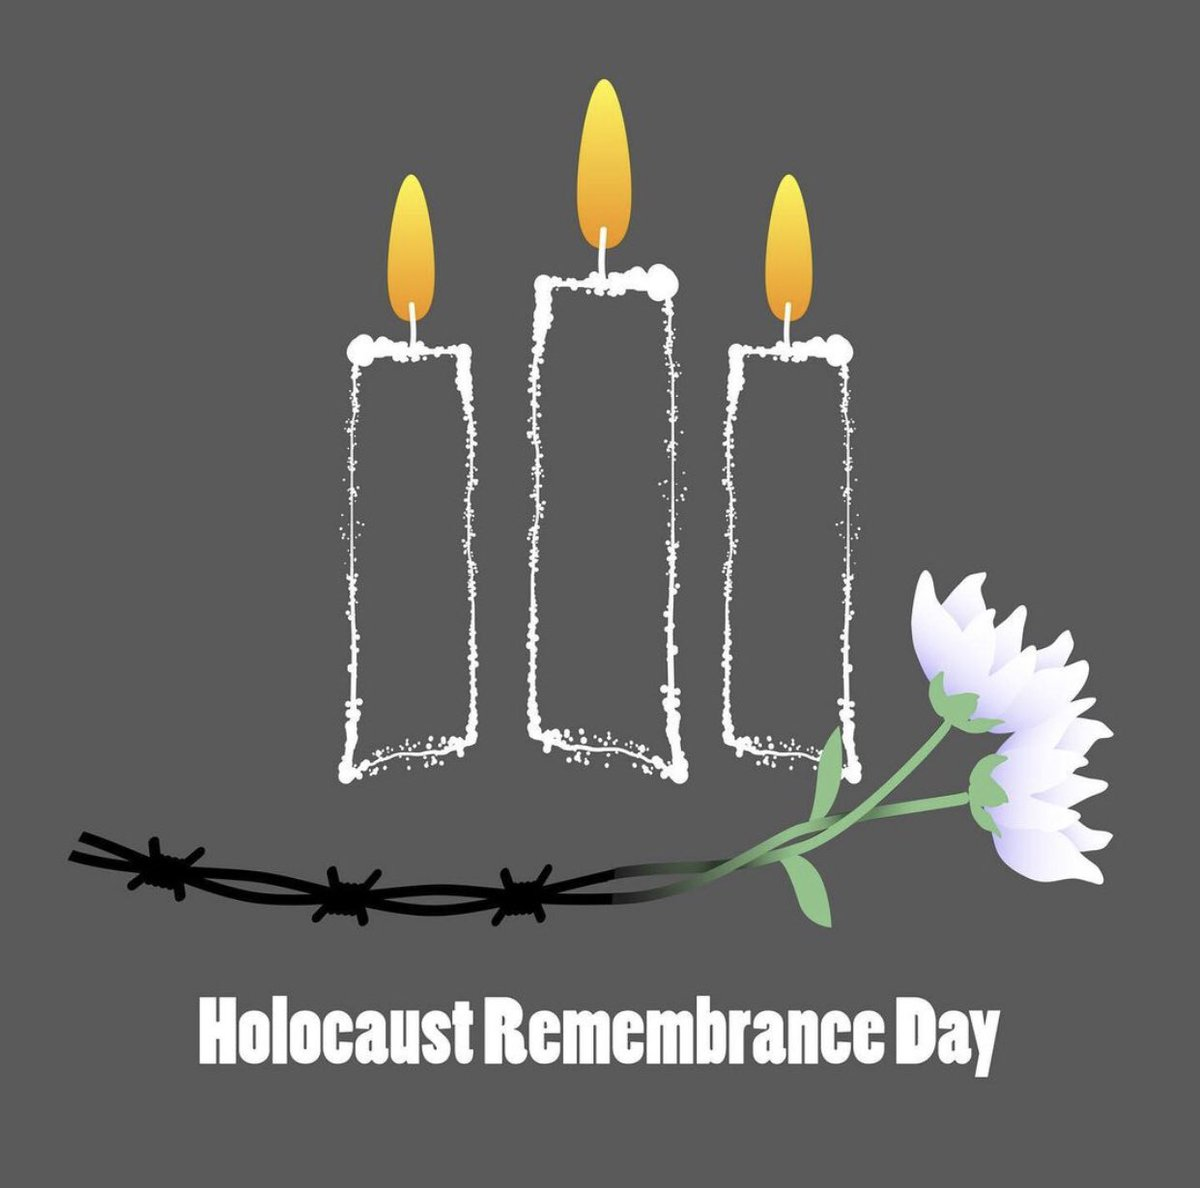 #HolocaustRemembranceDay remembering the more than 6 million Jewish people that lost their lives during the Holocaust. May we never loose our awareness of #Antisemitism , #racism and on our own little ways try to counteract it in our lives